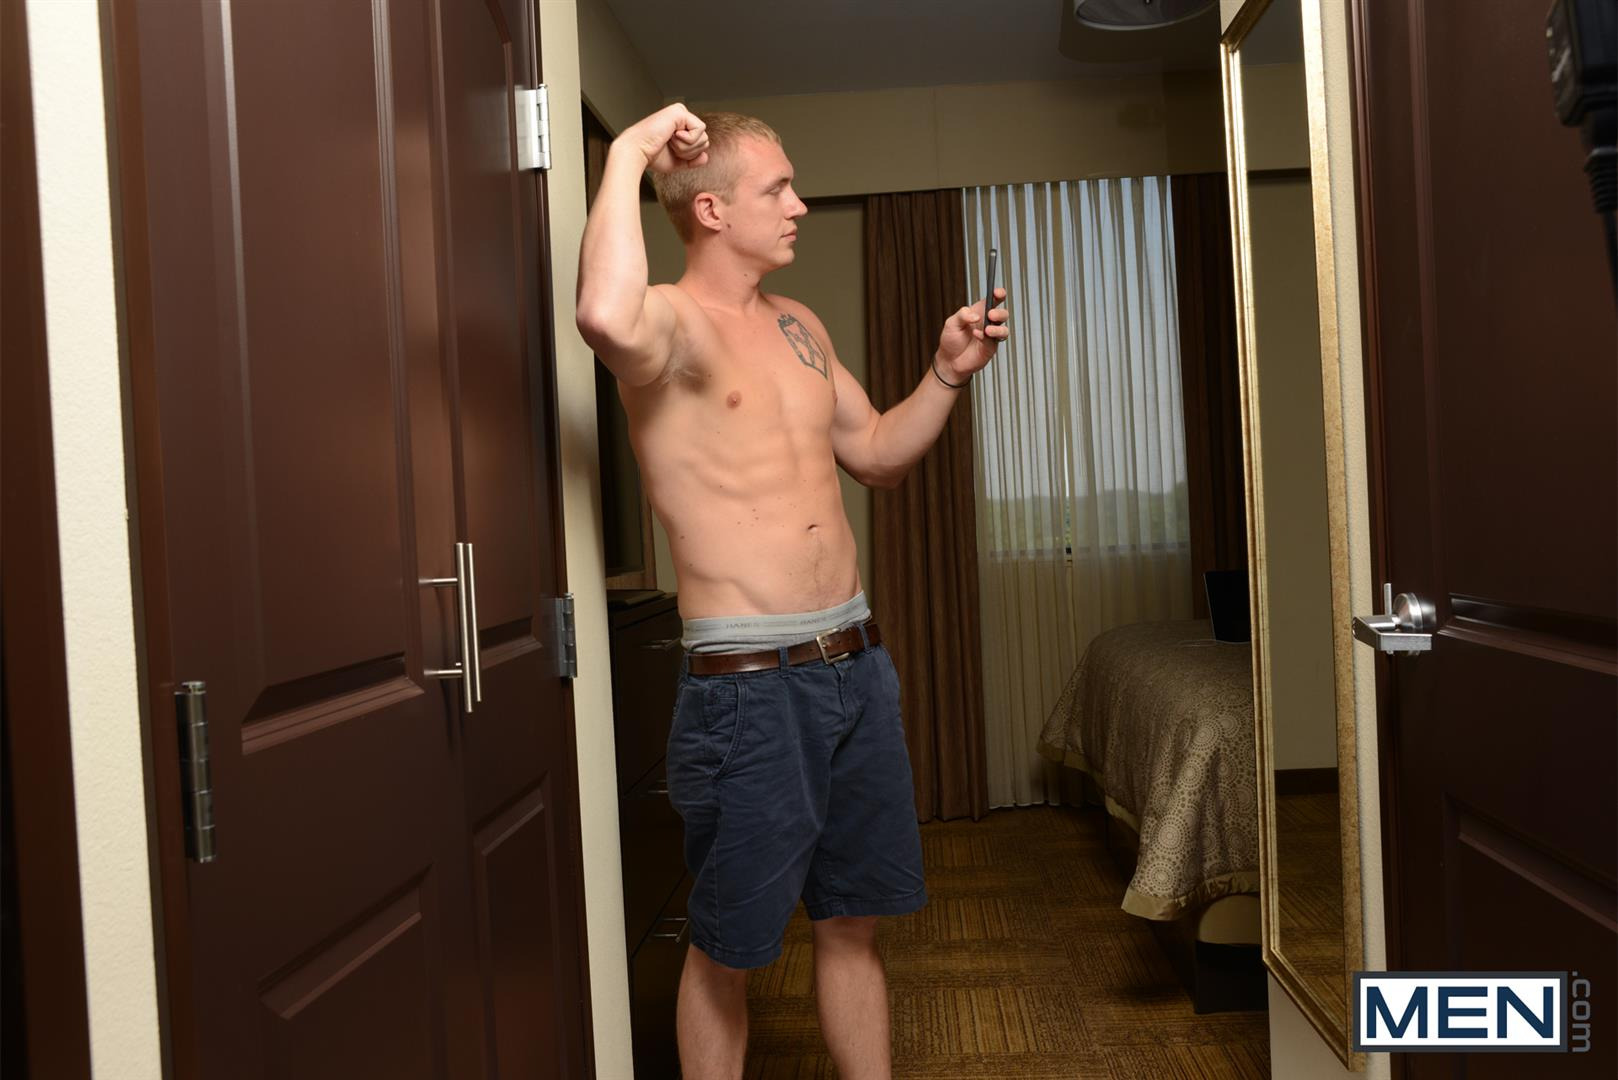 Guy fuck brother photo gay the stud share 9